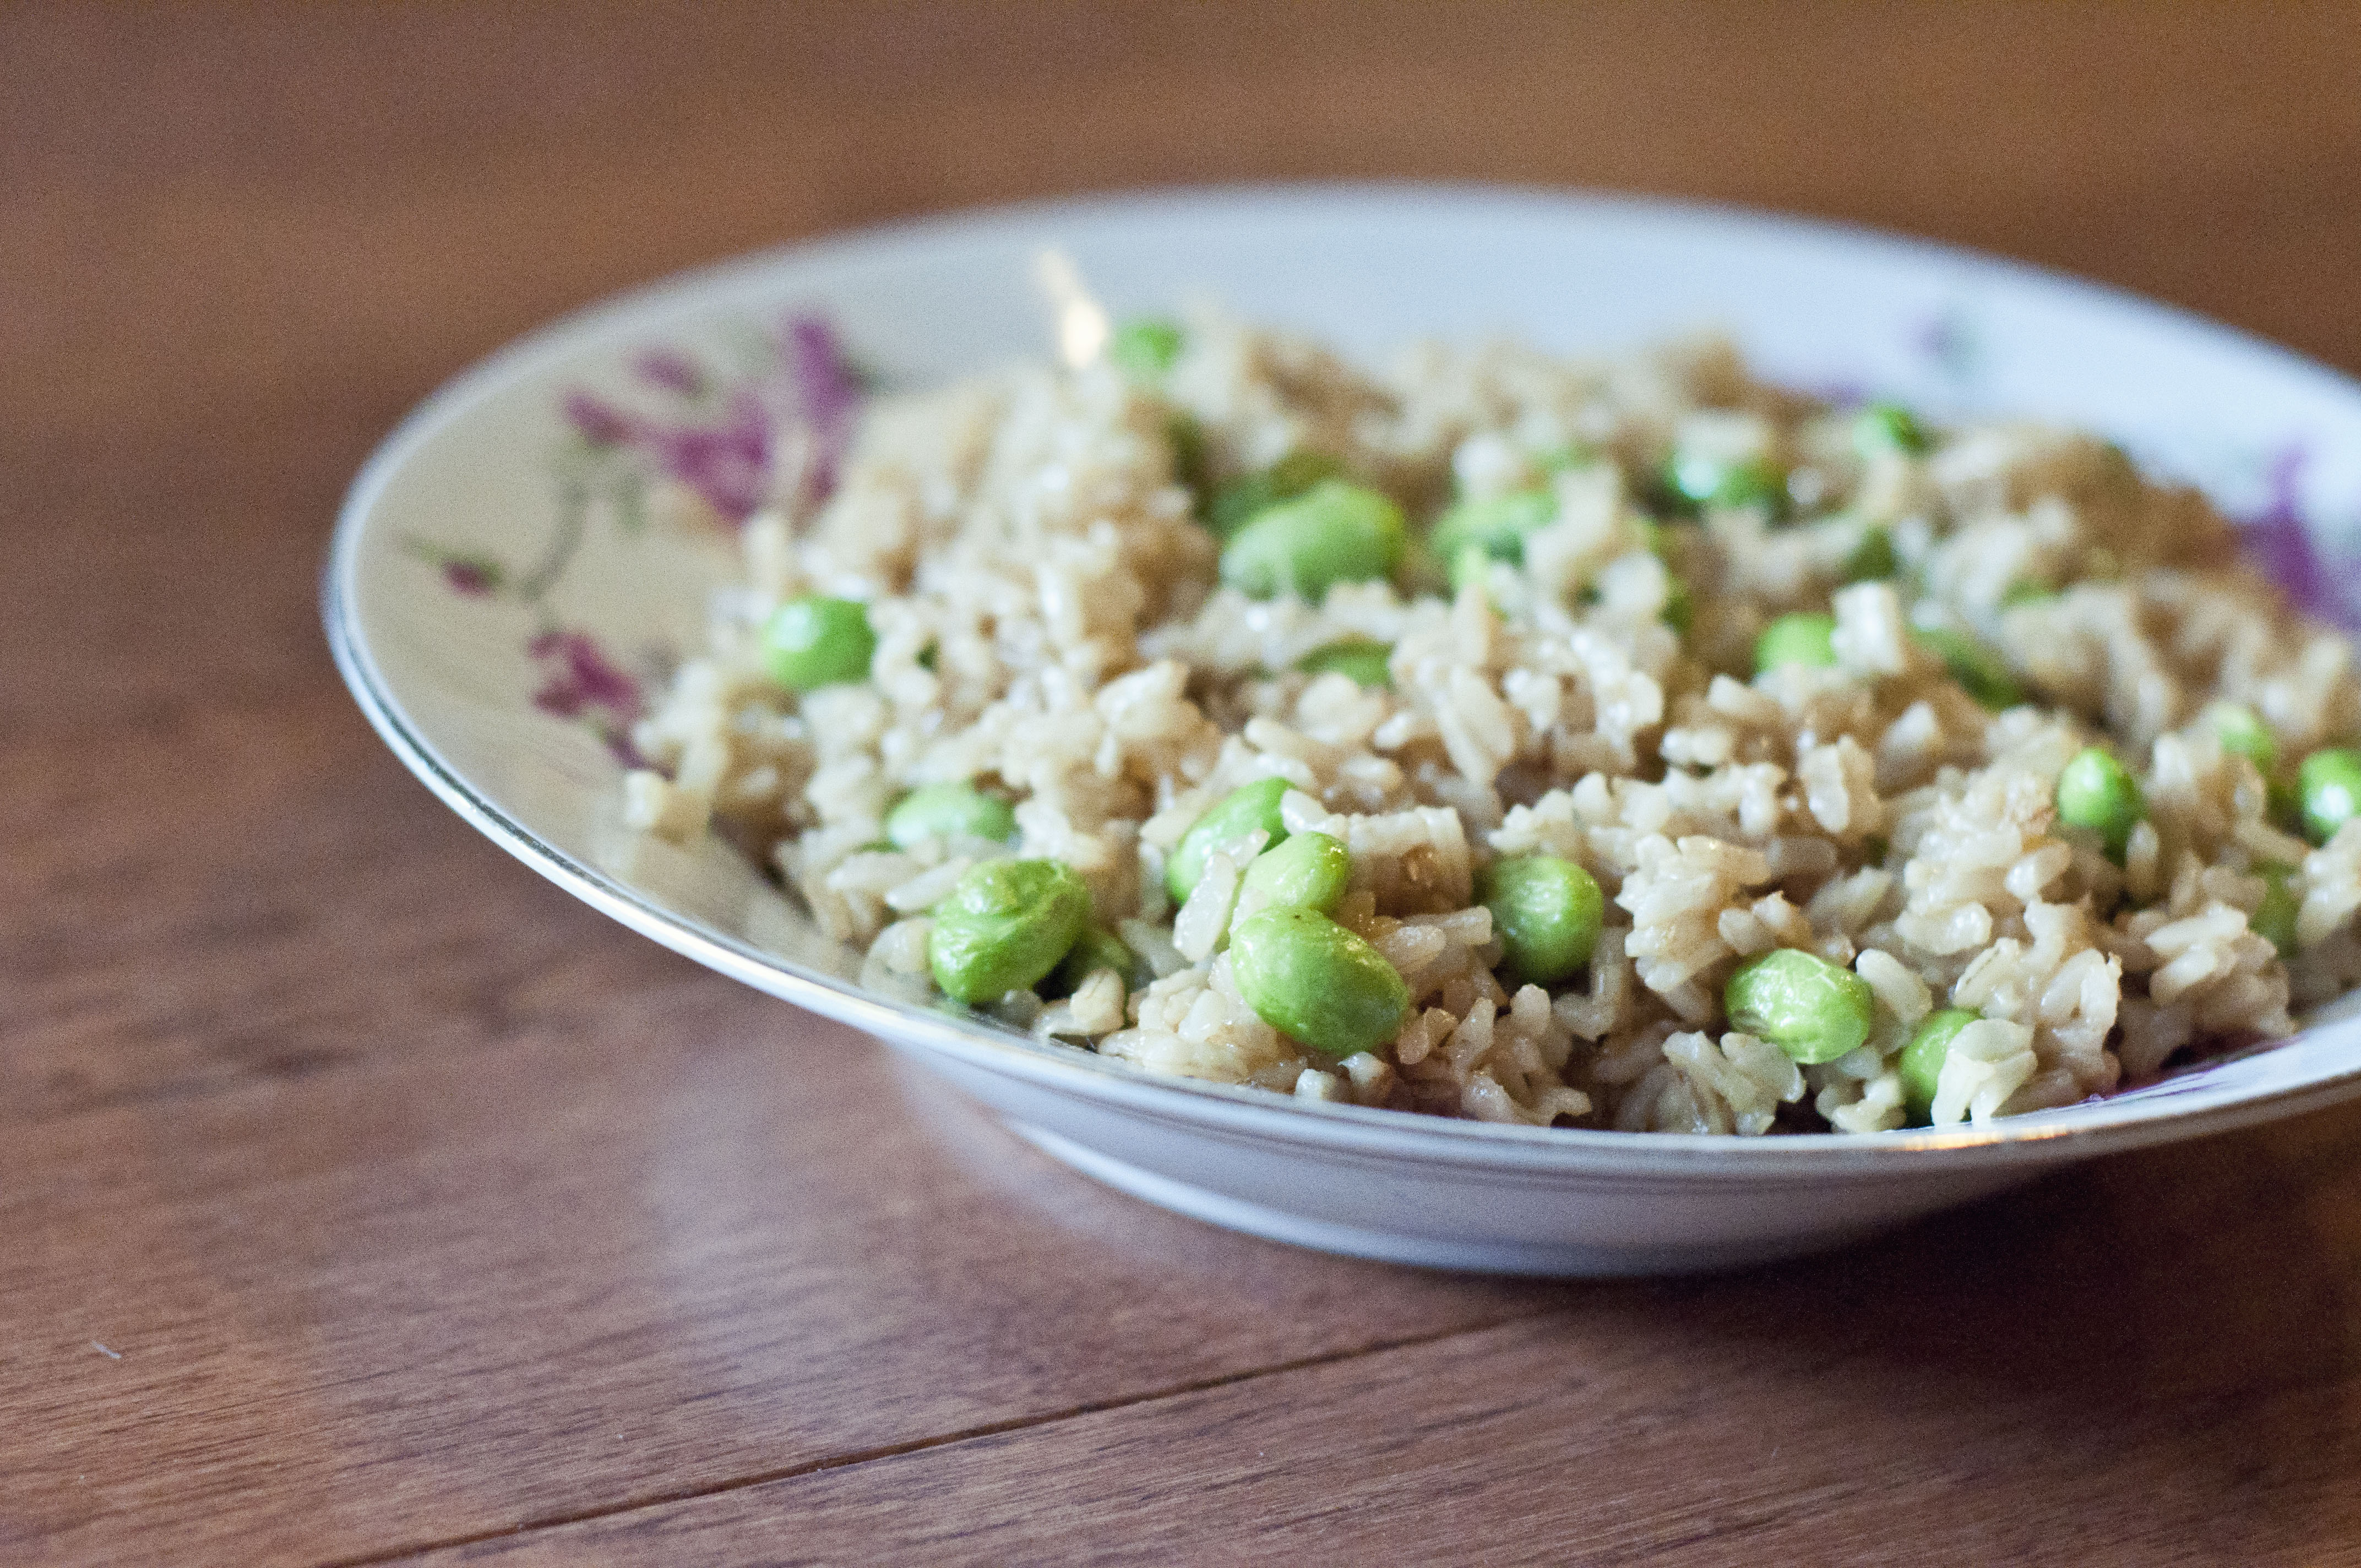 national soy foods month, april, edamame, asian cuisine, easy fried rice recipe, edamame fried rice recipe, edamame recipe, easy edamame recipe, edamame, cooking, food,